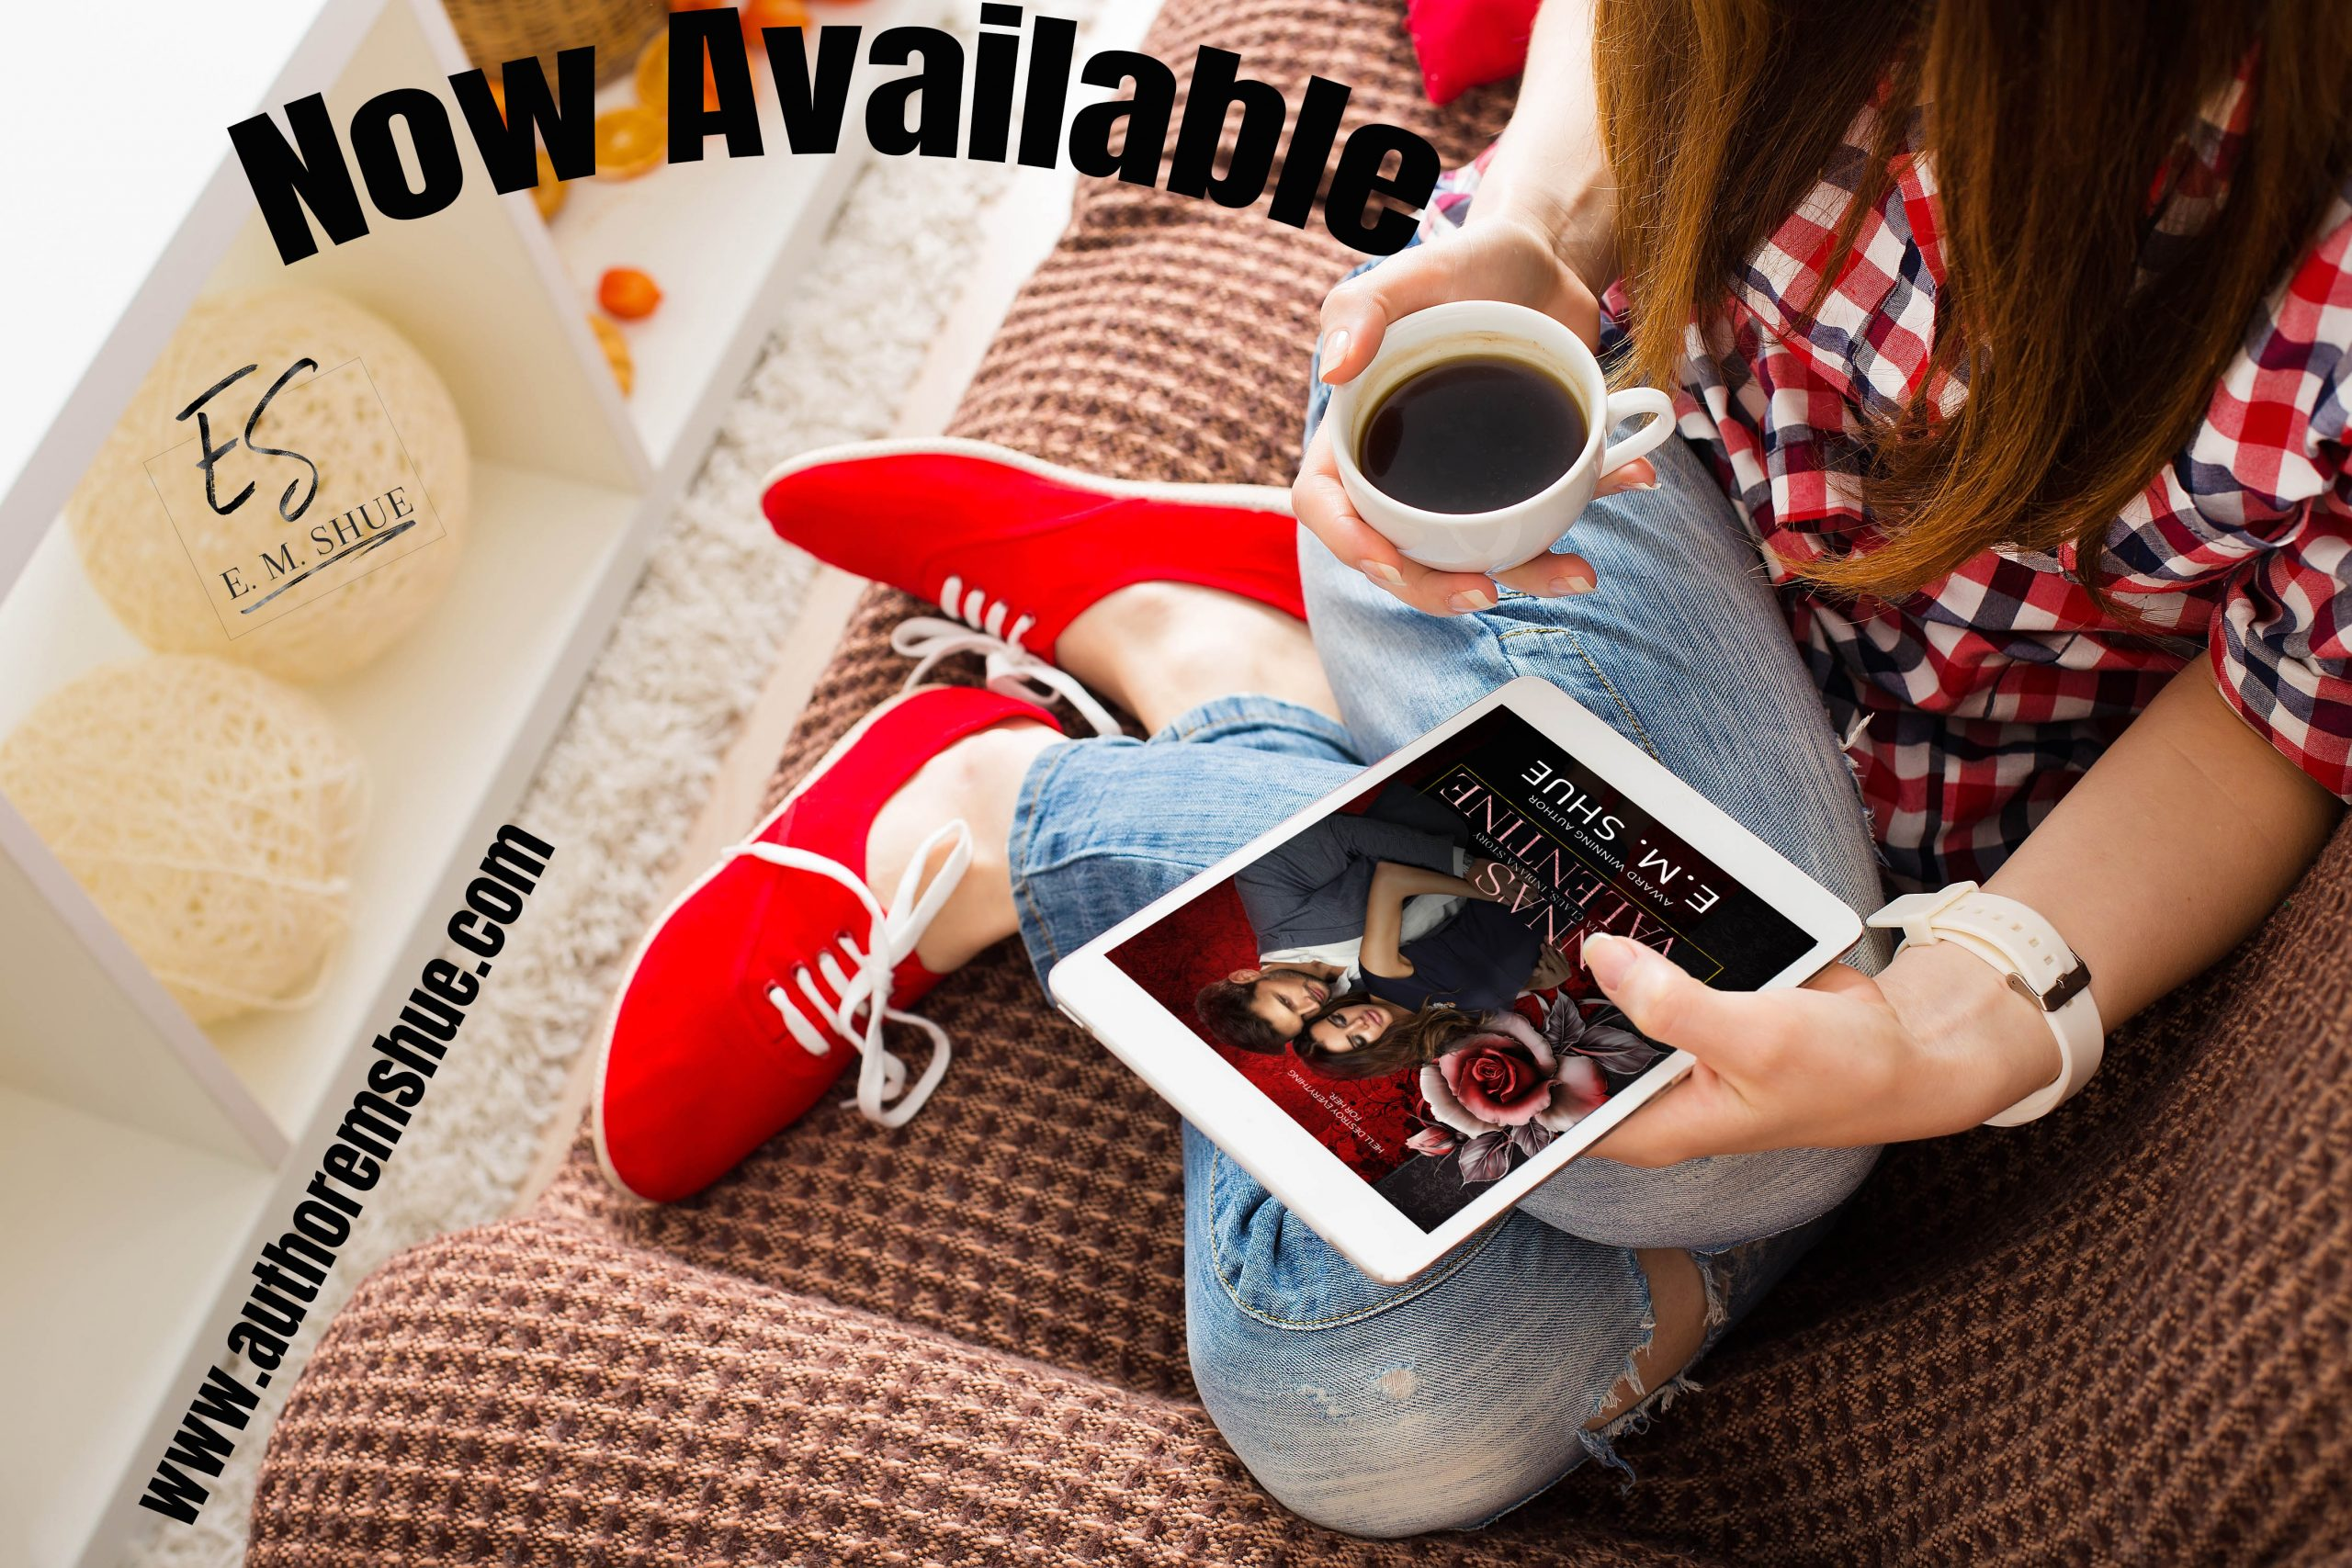 Available Now: Hanna's Valentine: A Santa Claus Indiana Story by E.M. Shue